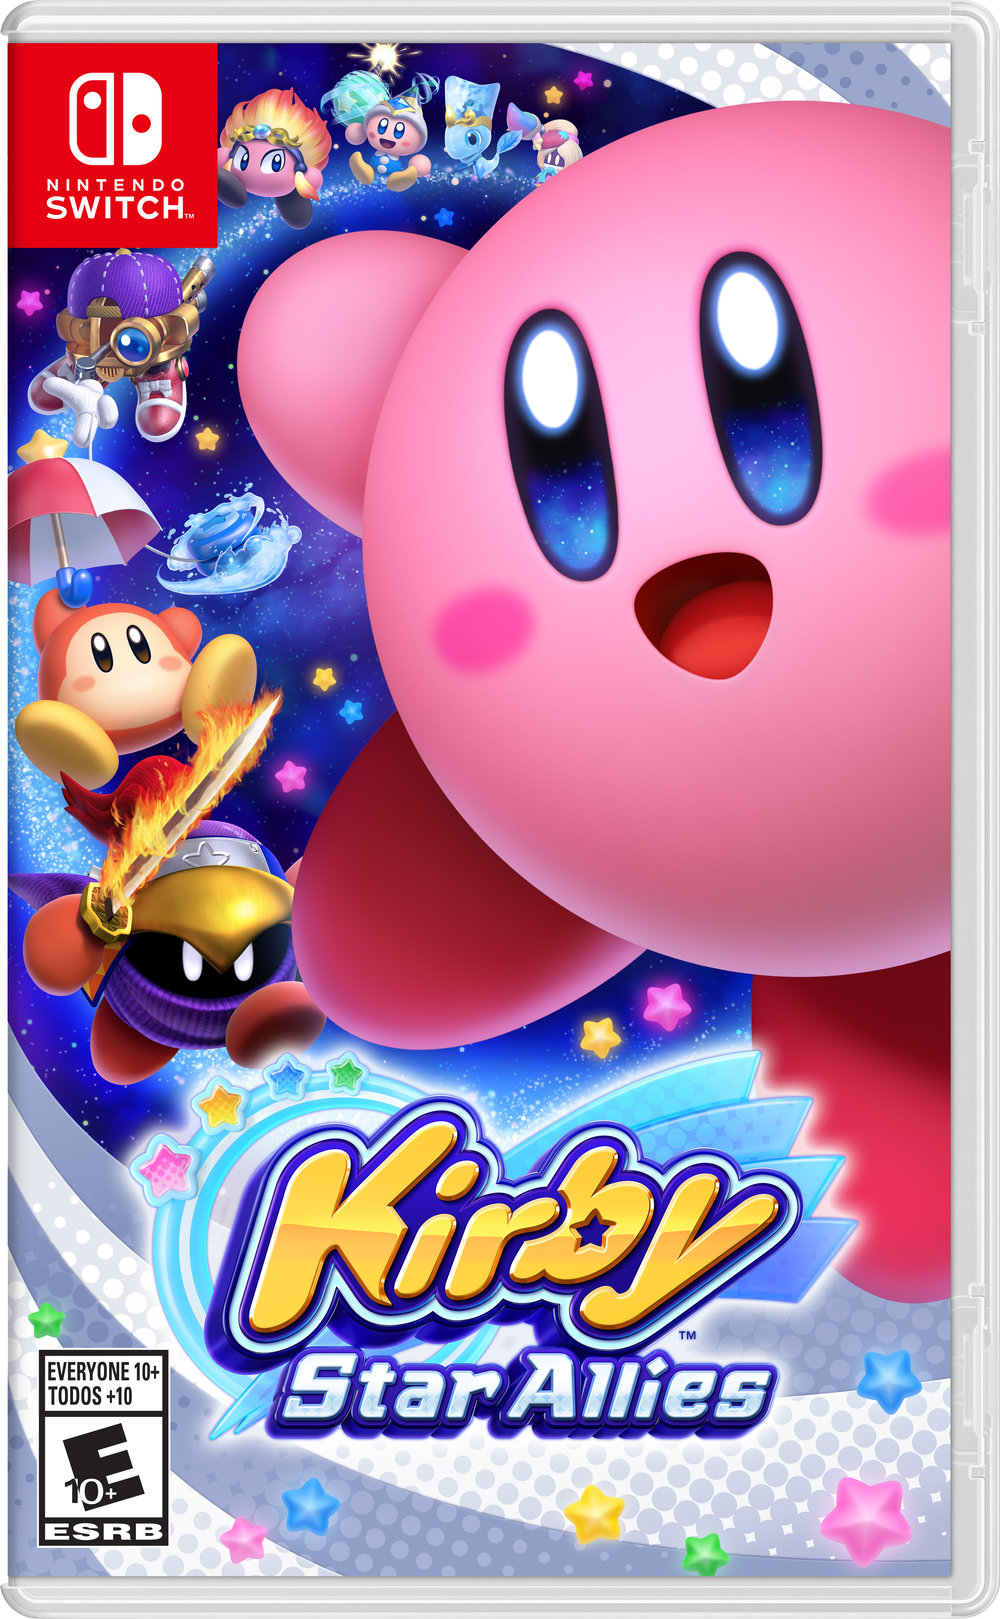 Click Here to order Kirby Star Allies